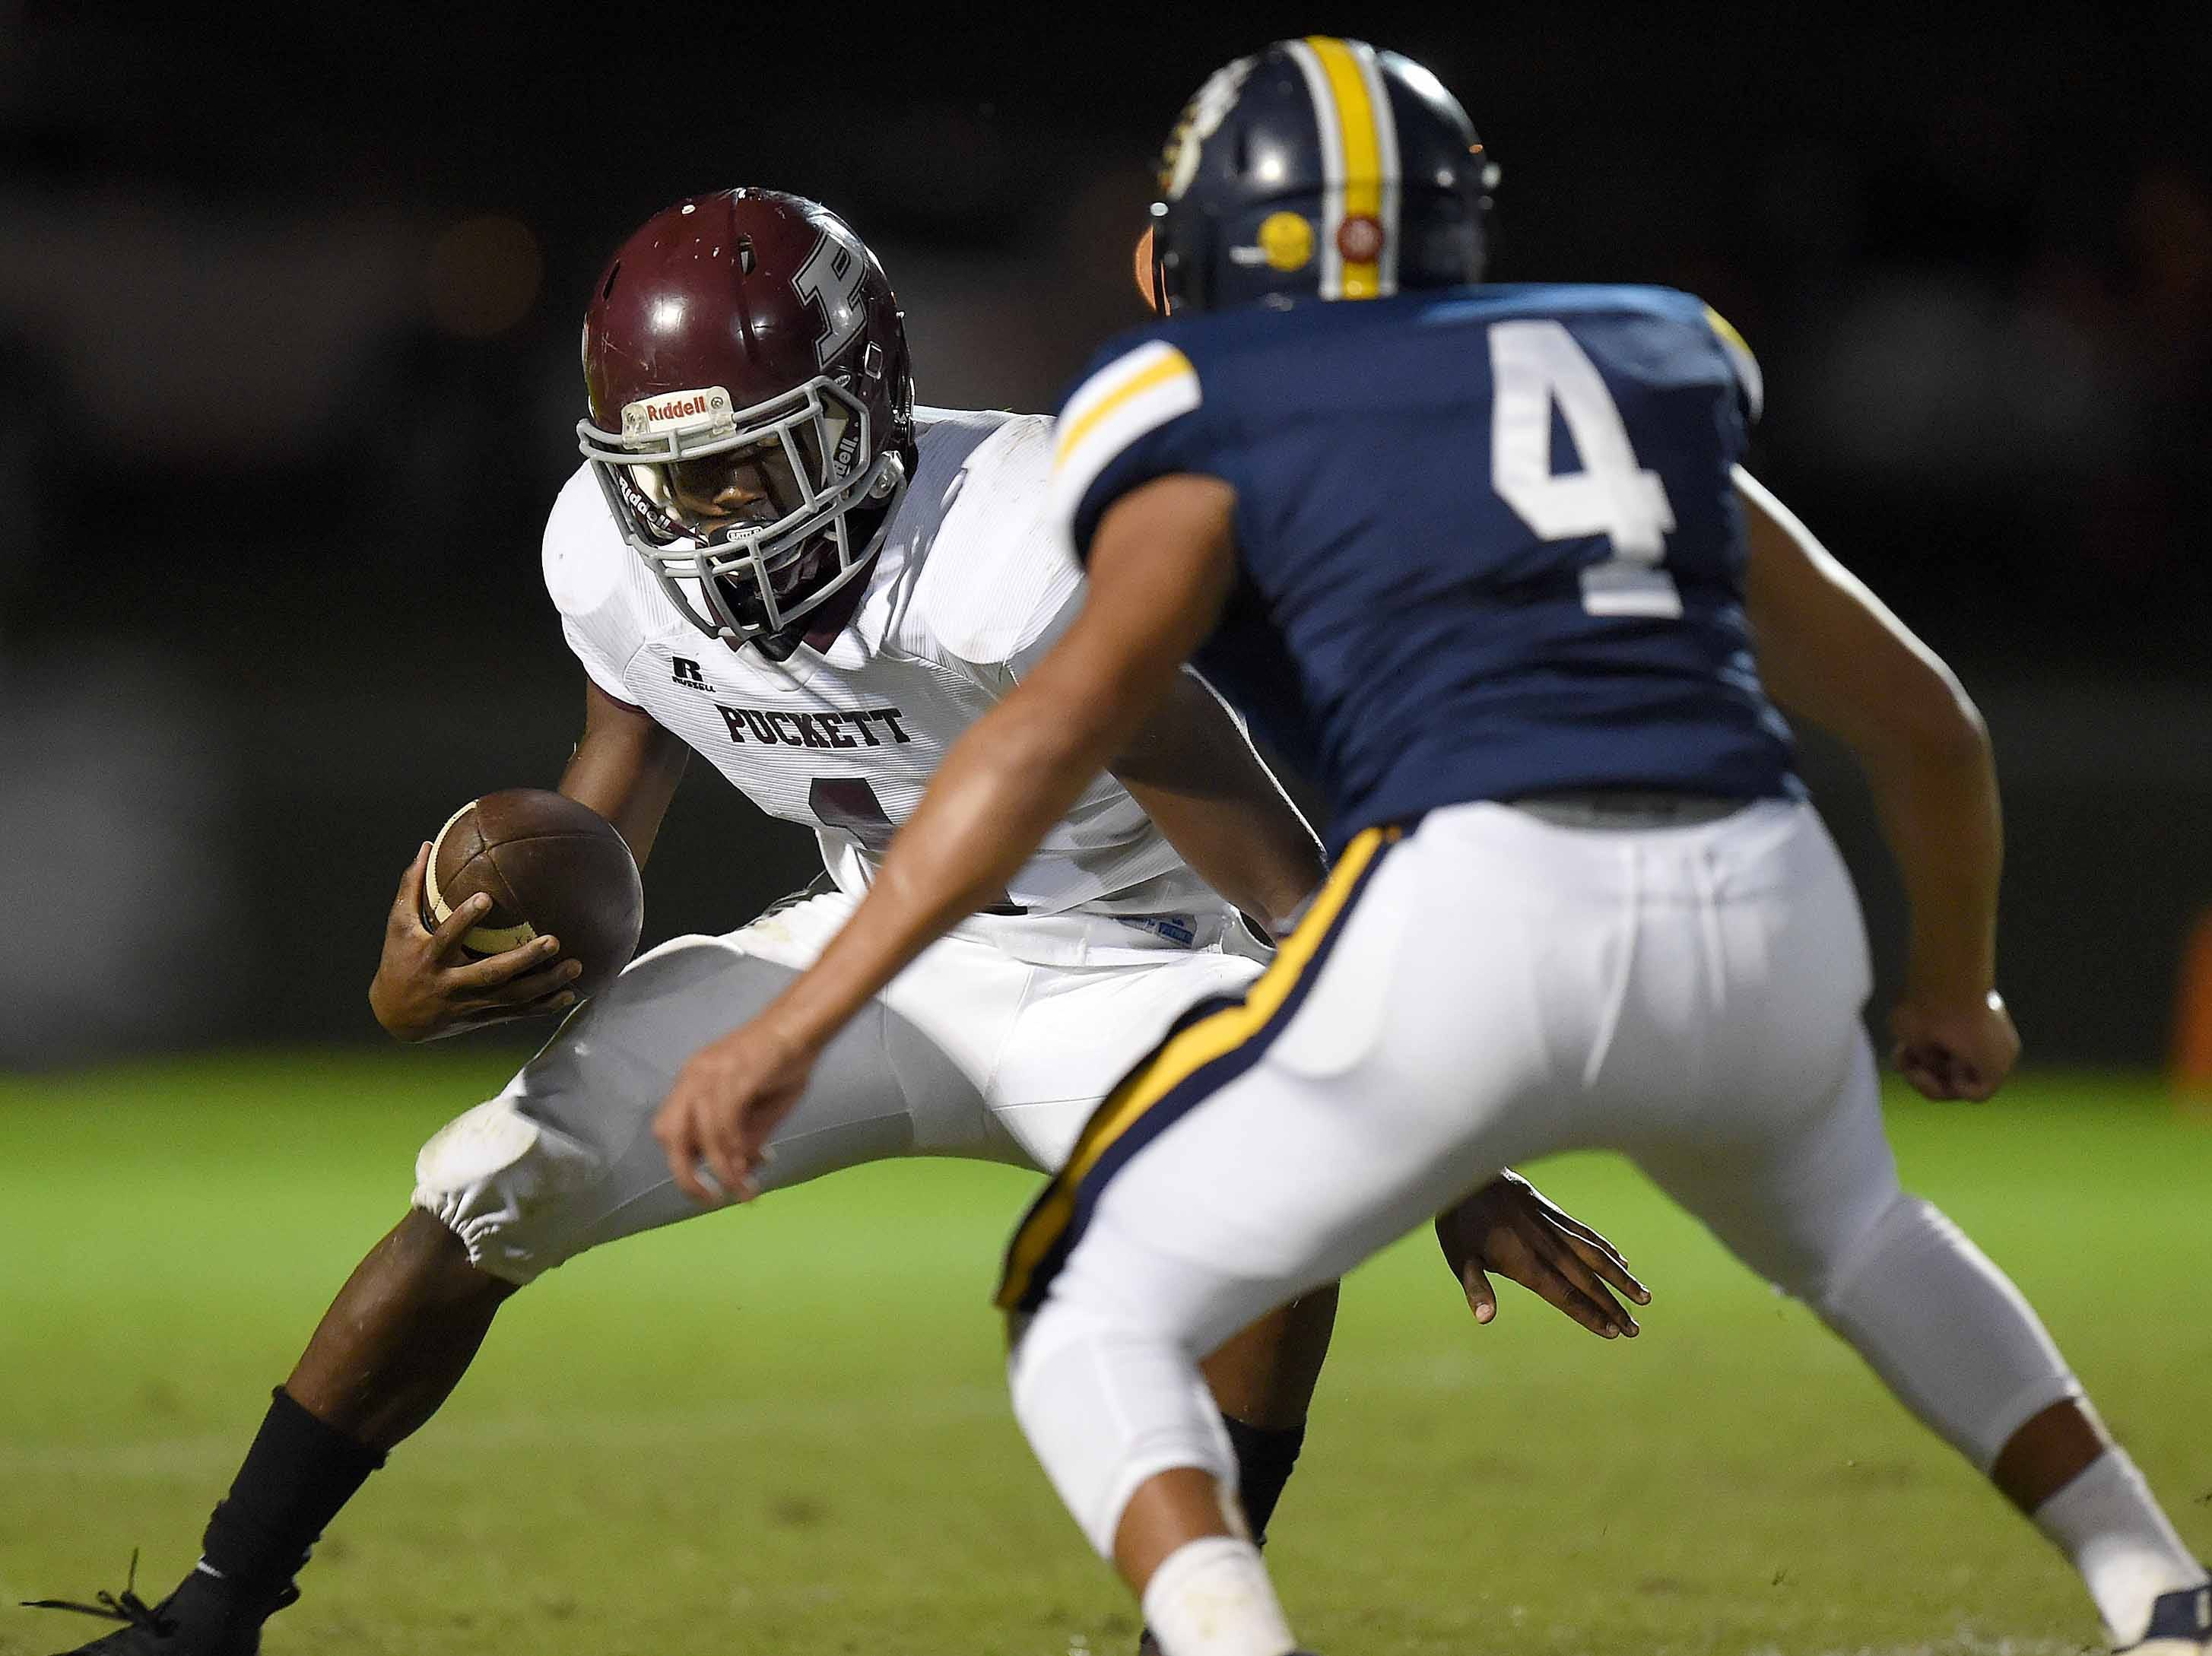 Puckett quarterback Ty'vez Tate (1) tries to get by St. Joseph's Stephen Wolf (4) on Friday, October 19, 2018, at St. Joseph Catholic School in Madison, Miss.